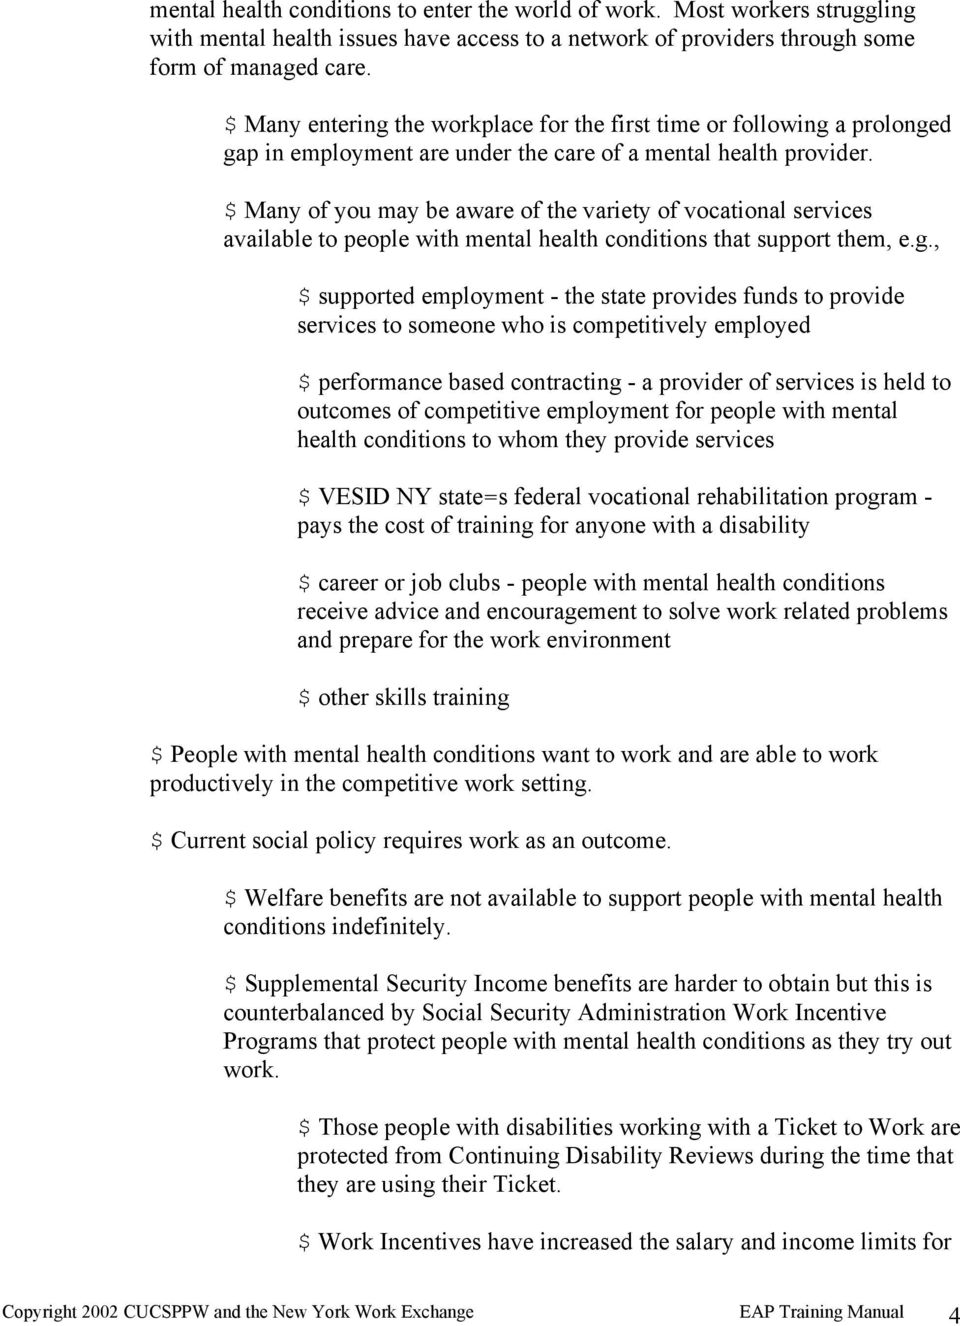 $ Many of you may be aware of the variety of vocational services available to people with mental health conditions that support them, e.g.